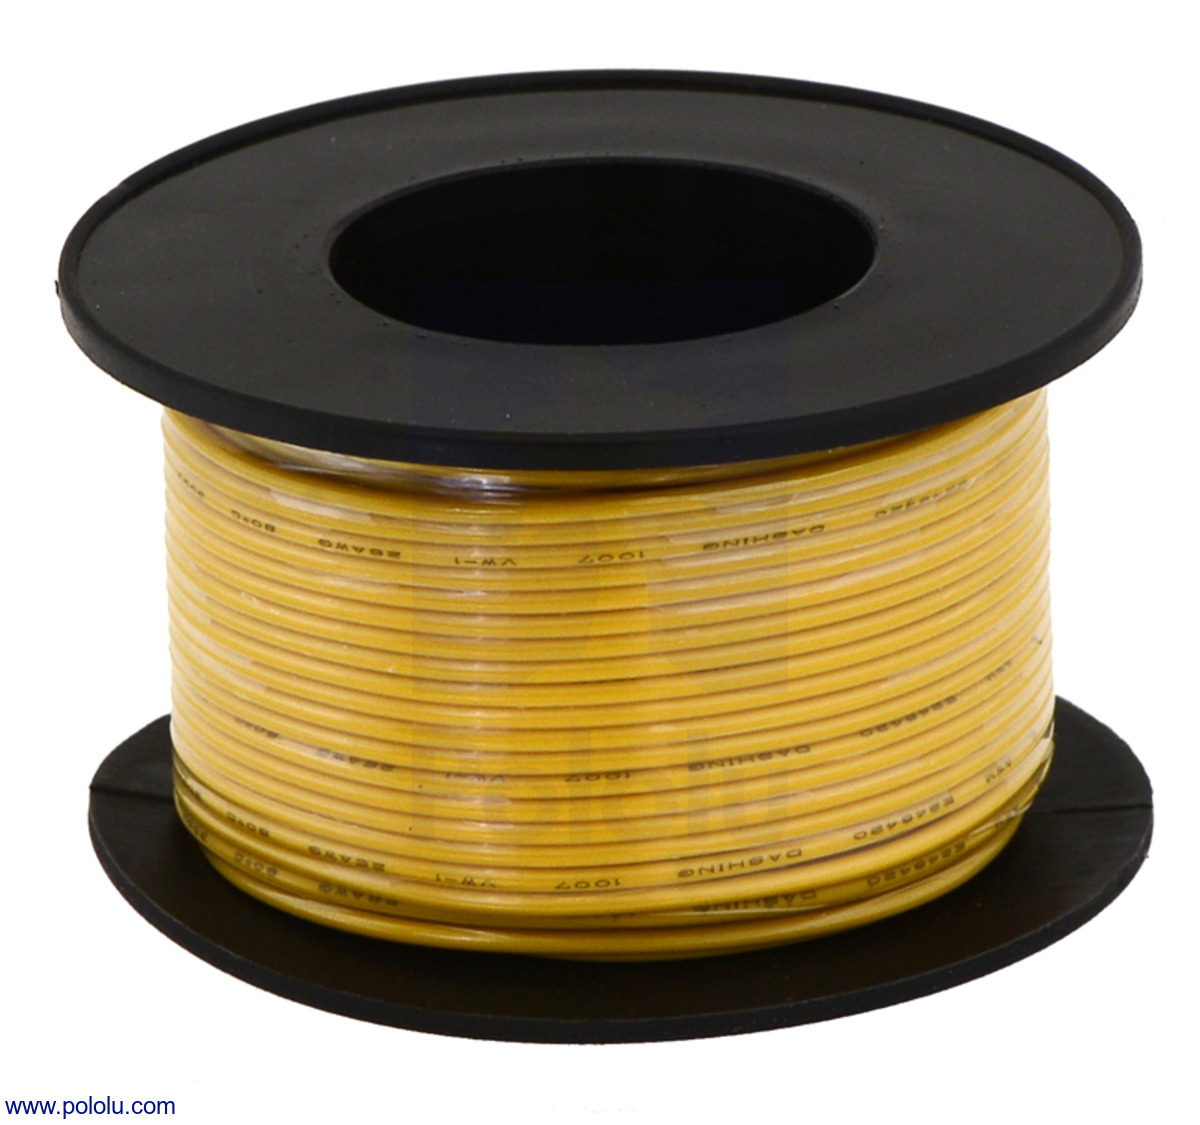 Pololu - Stranded Wire: Yellow, 20 AWG, 40 Feet